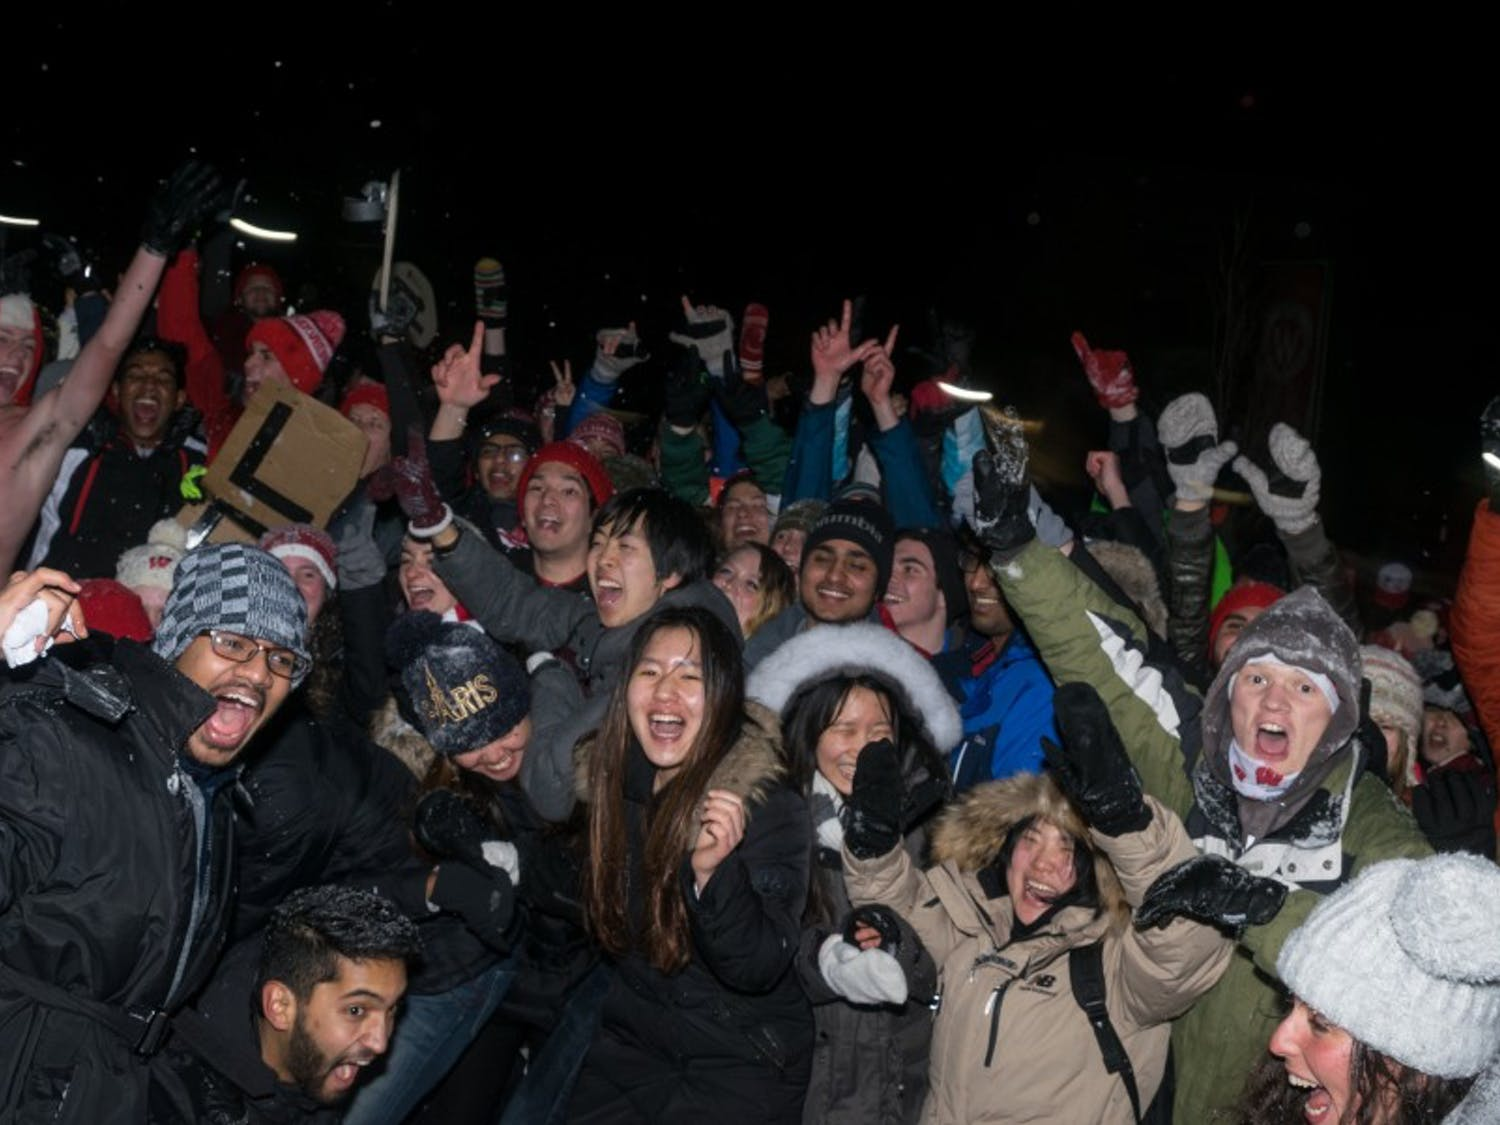 Lakeshore and Southeast neighborhood residents fired snowballs as they fought in the Battle for Bascom Thursday night.